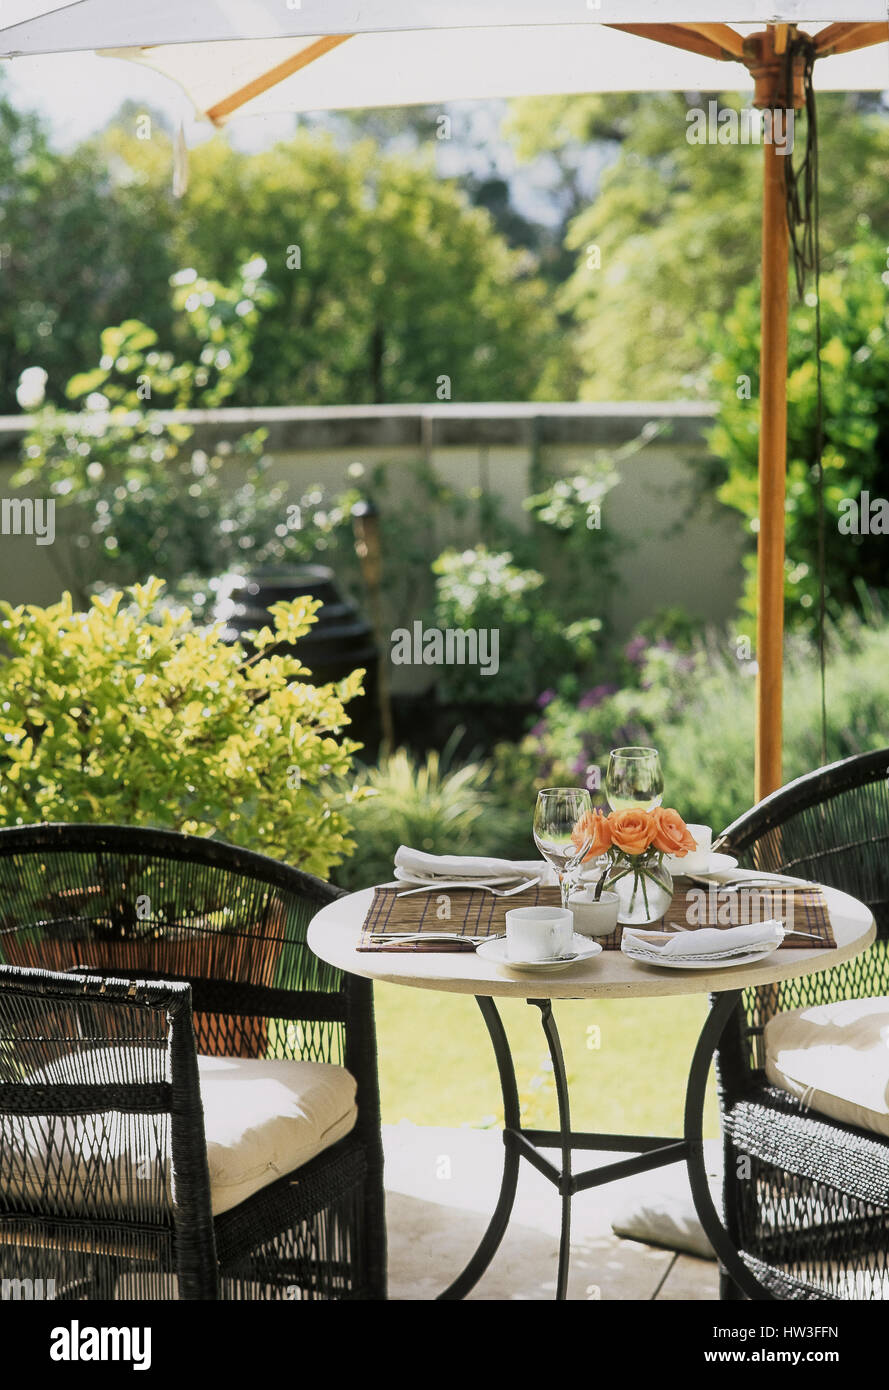 Outdoor furniture on deck. - Stock Image